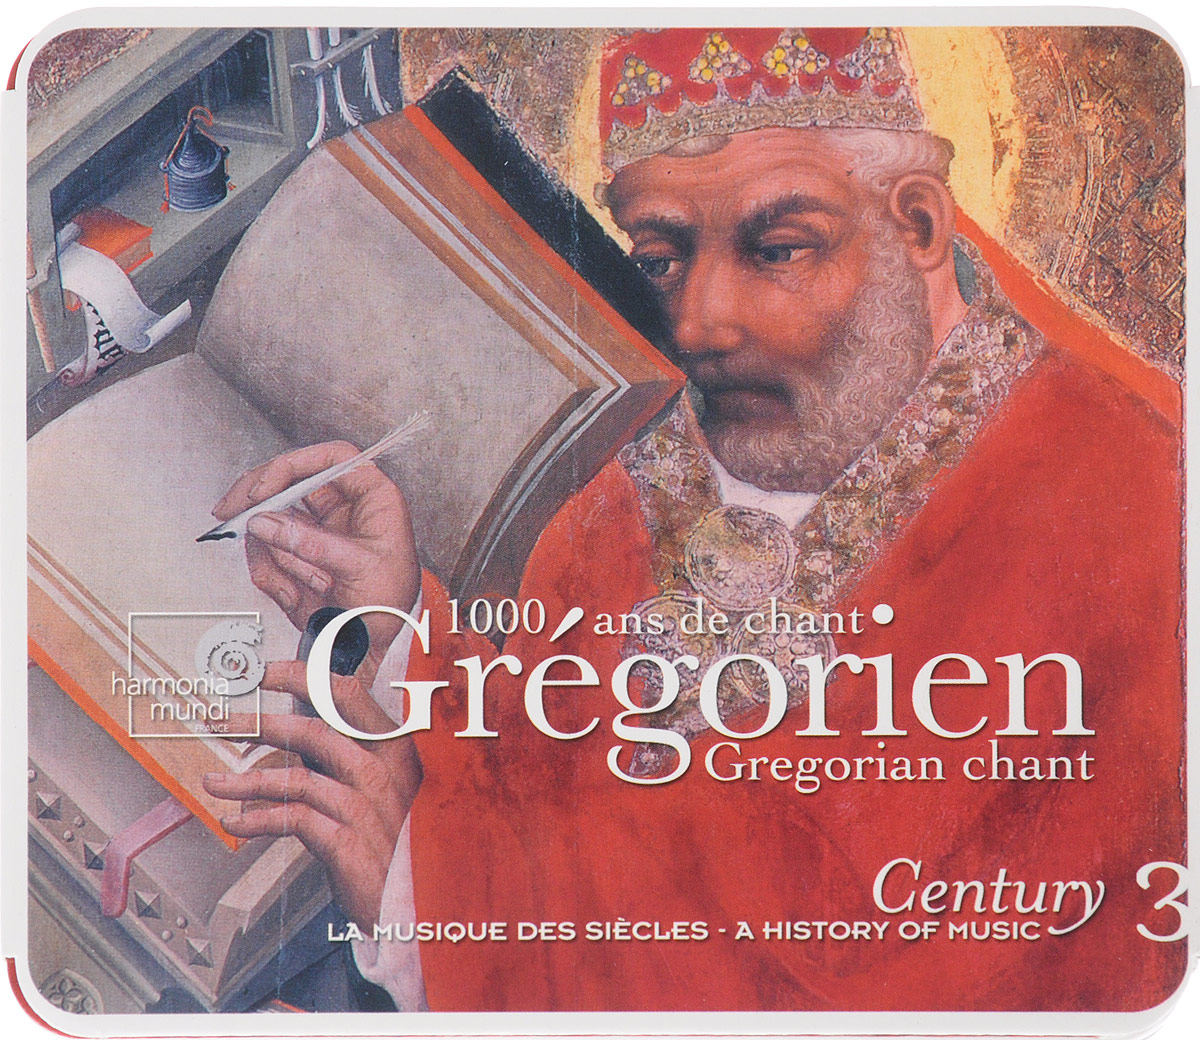 VARIOUS. GREGORIAN CHANT. GREGORIAN UNIFICATION AND THE LOCAL REPERTORIES. 1 a history of russian symbolism